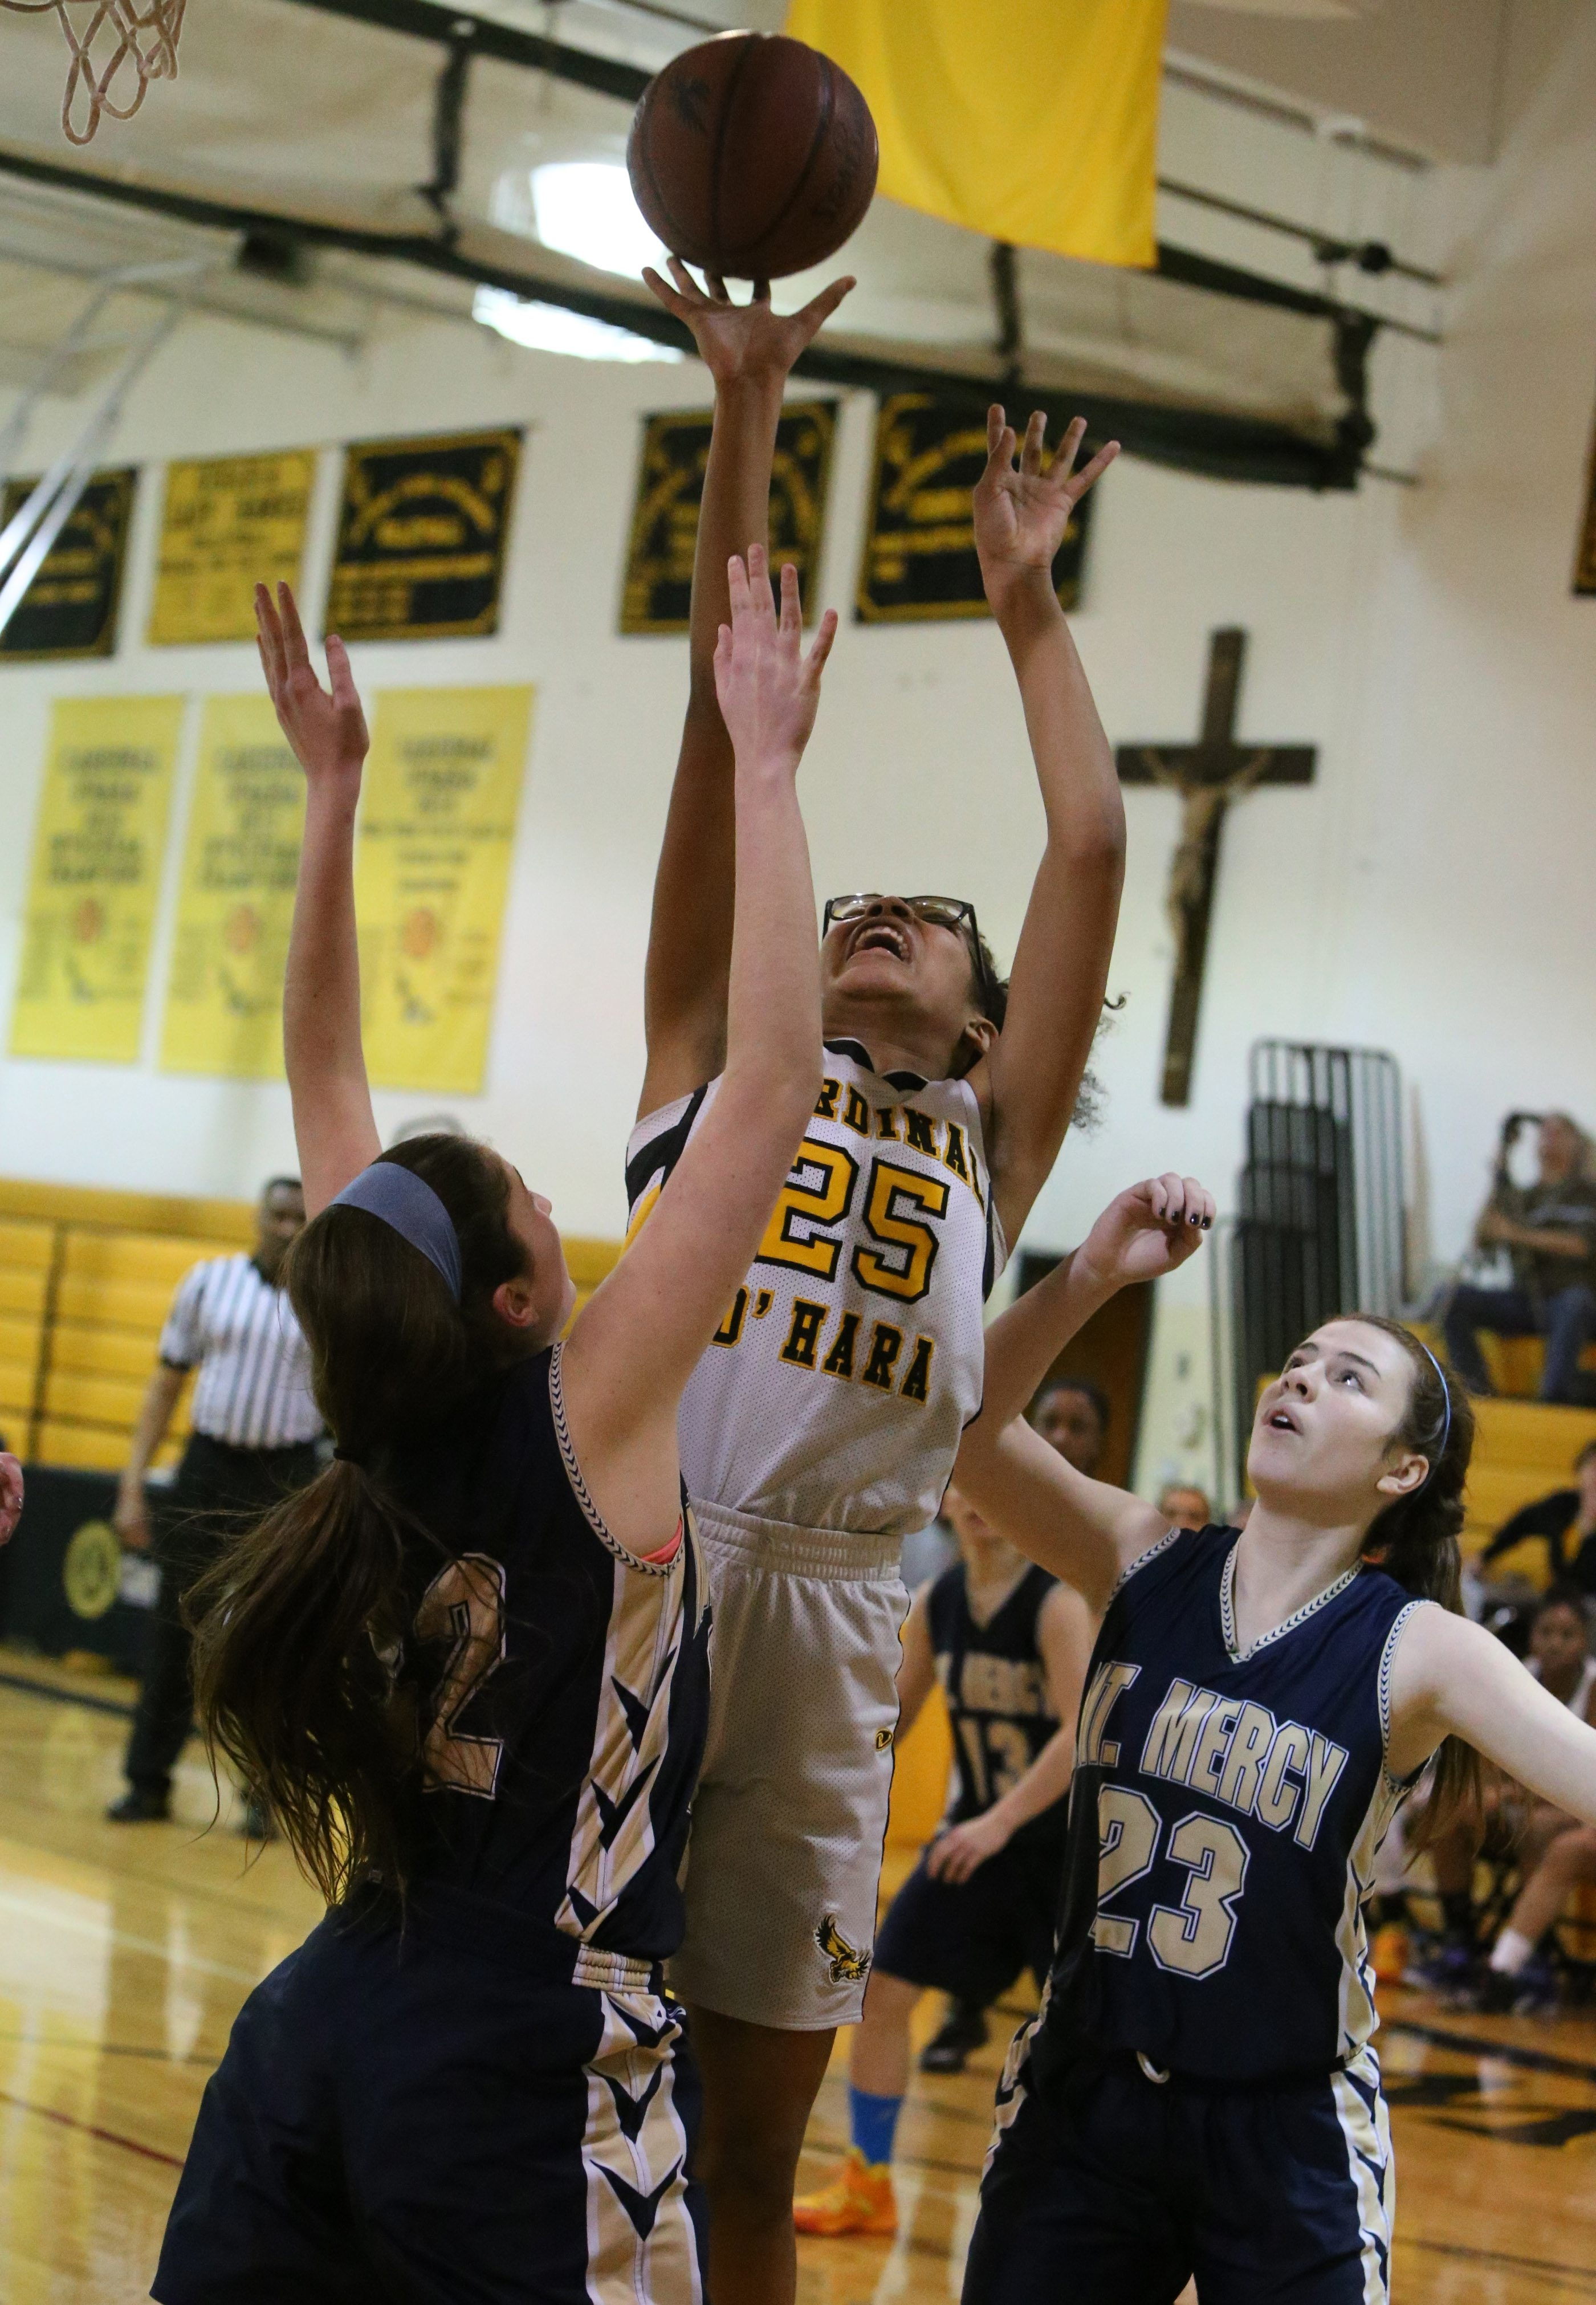 Cardinal O'Hara's Summer Hemphill scored her 1000 point tonight against Mount Mercy in the third quarter at Cardinal O'Hara high school in Kenmore,N.Y. on Monday, Jan. 26, 2015.  (James P. McCoy/ Buffalo News)